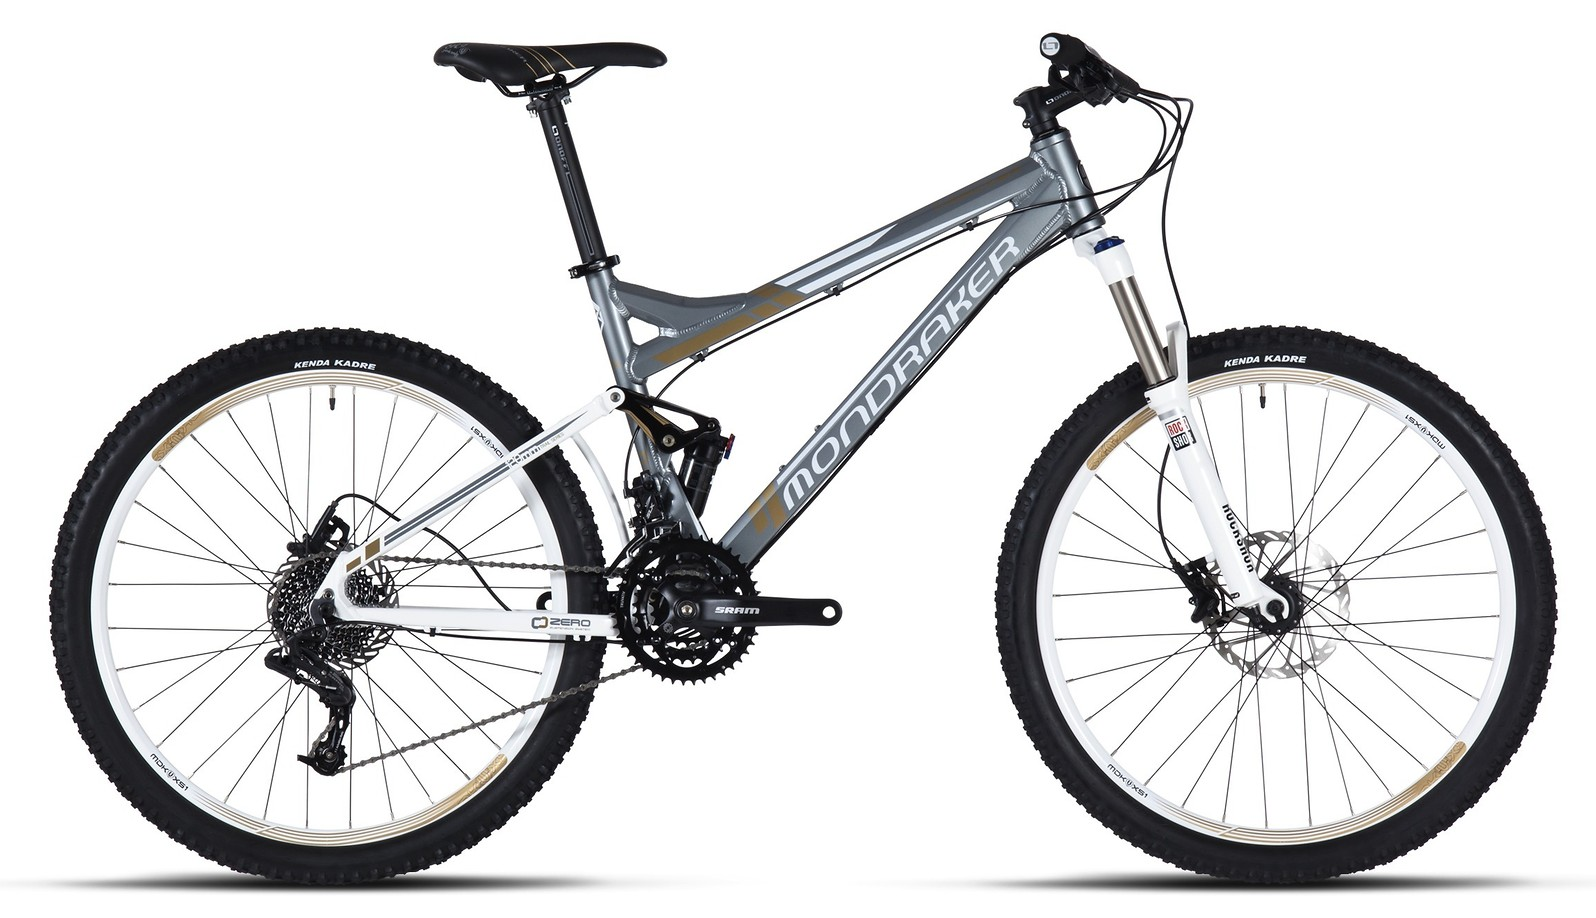 2013 Mondraker Tracker GO (Girls Only) Bike bike - mondraker tracker go (girls only)